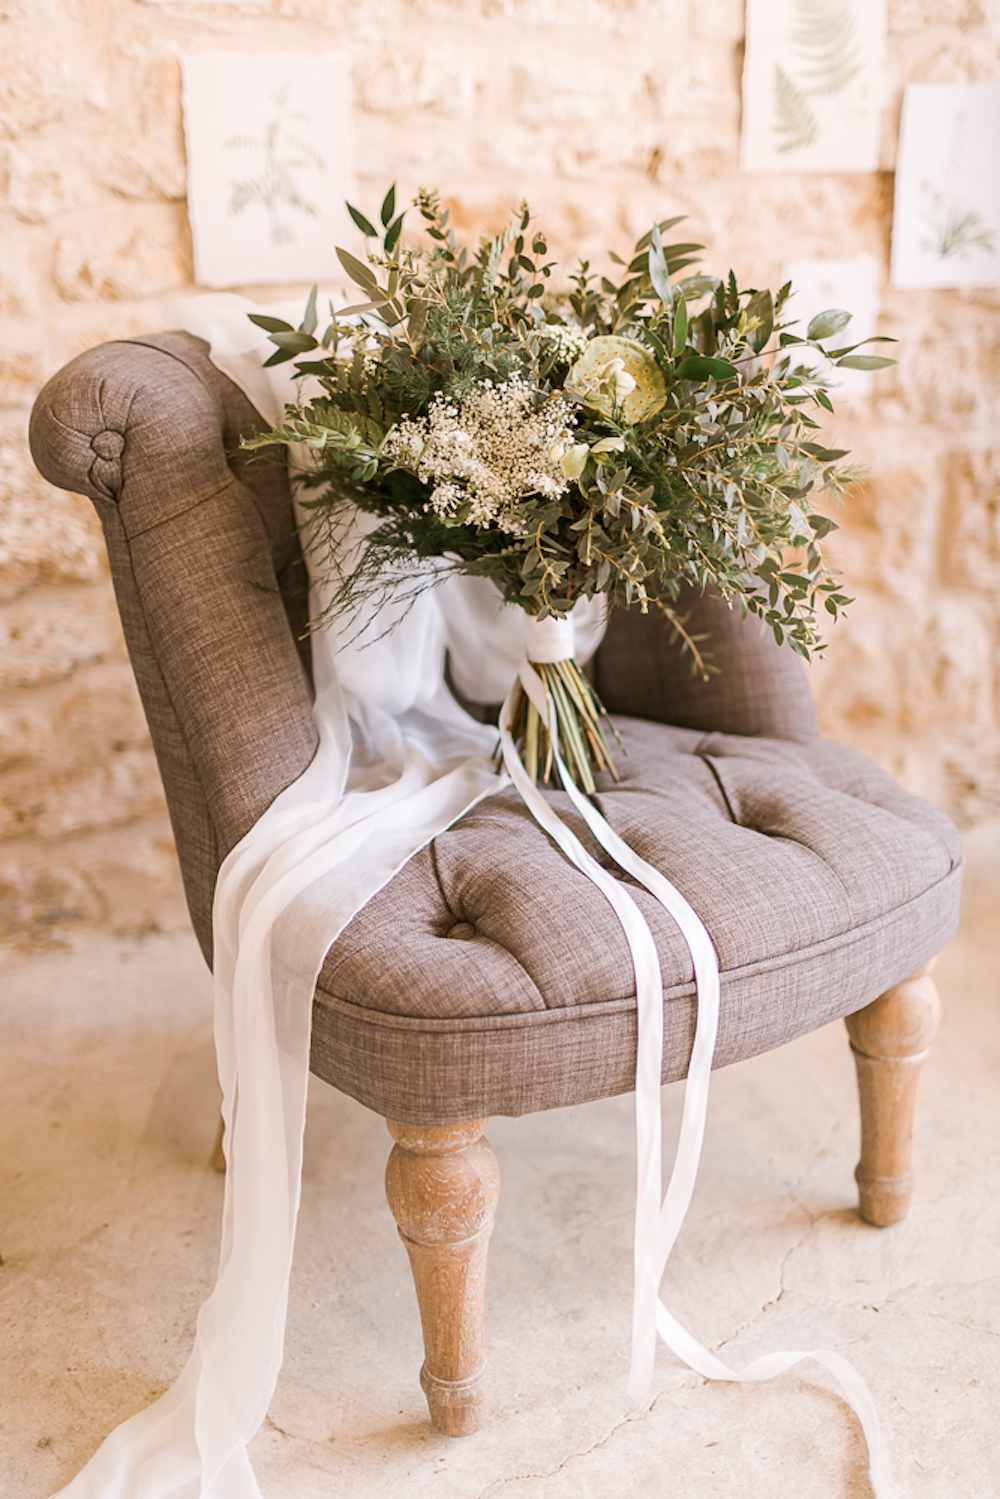 parisian-inspired-blog-mariage-shooting-inspiration-vegetal-abbaye-trois-fontaines-marne-cg-photographie-8.jpg